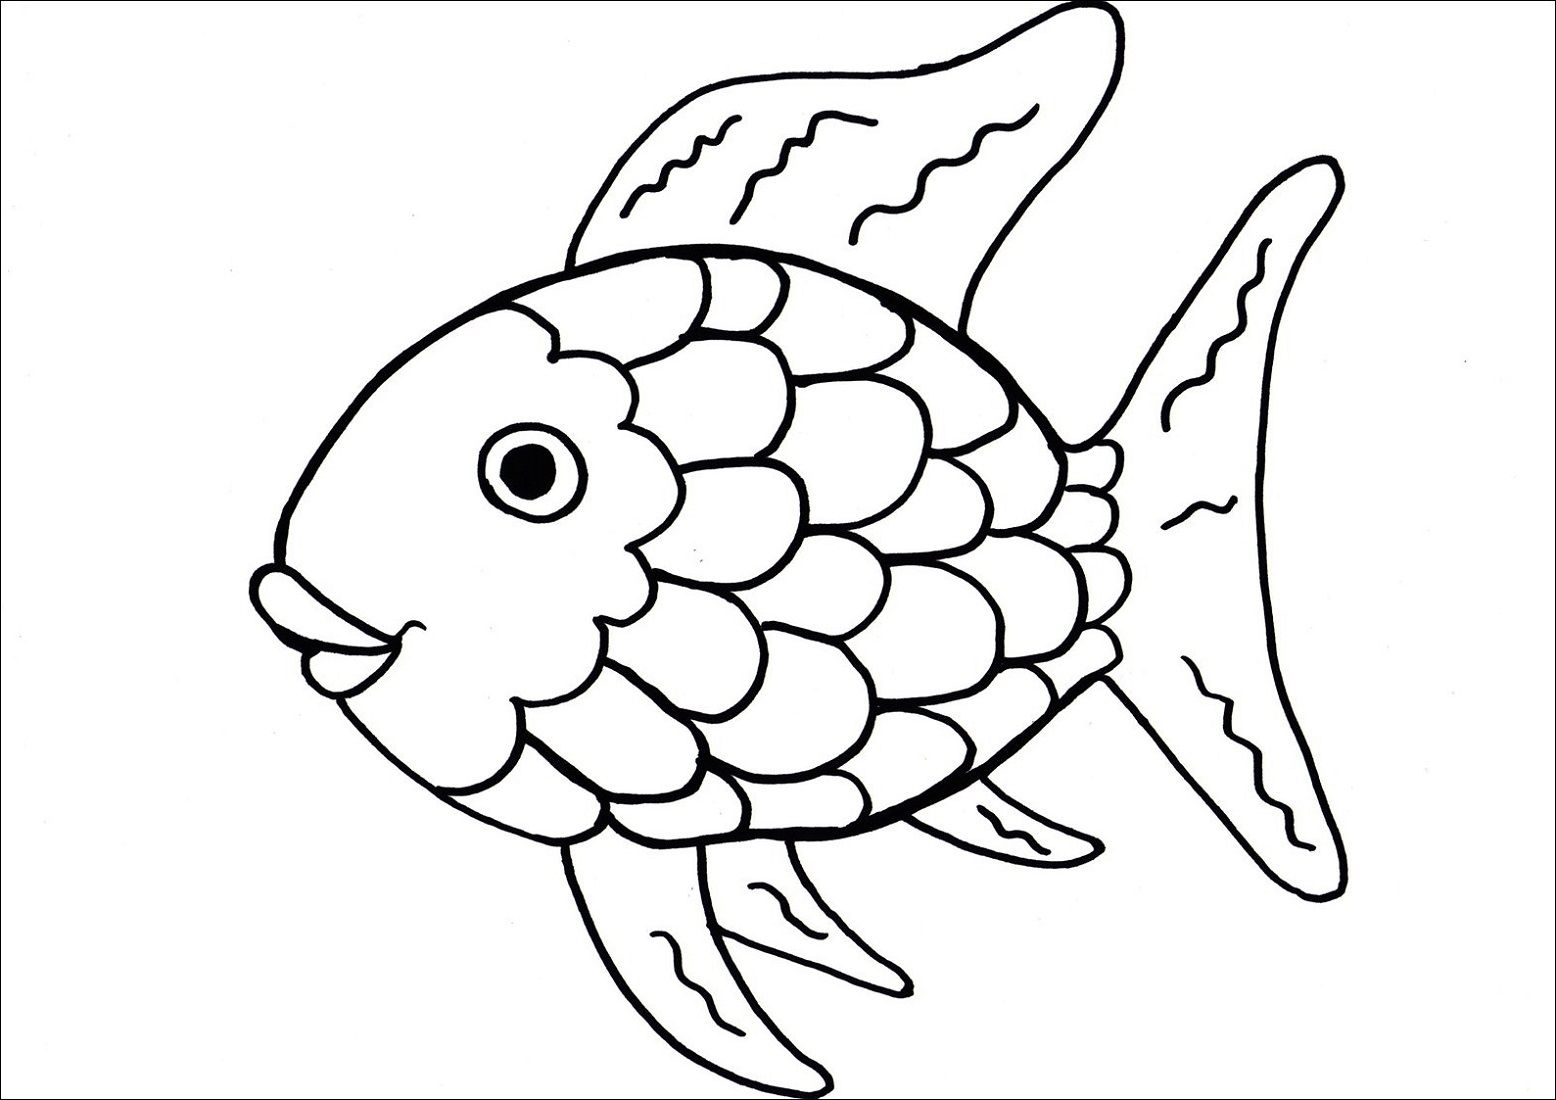 Printable Coloring Pages For Toddlers Fish